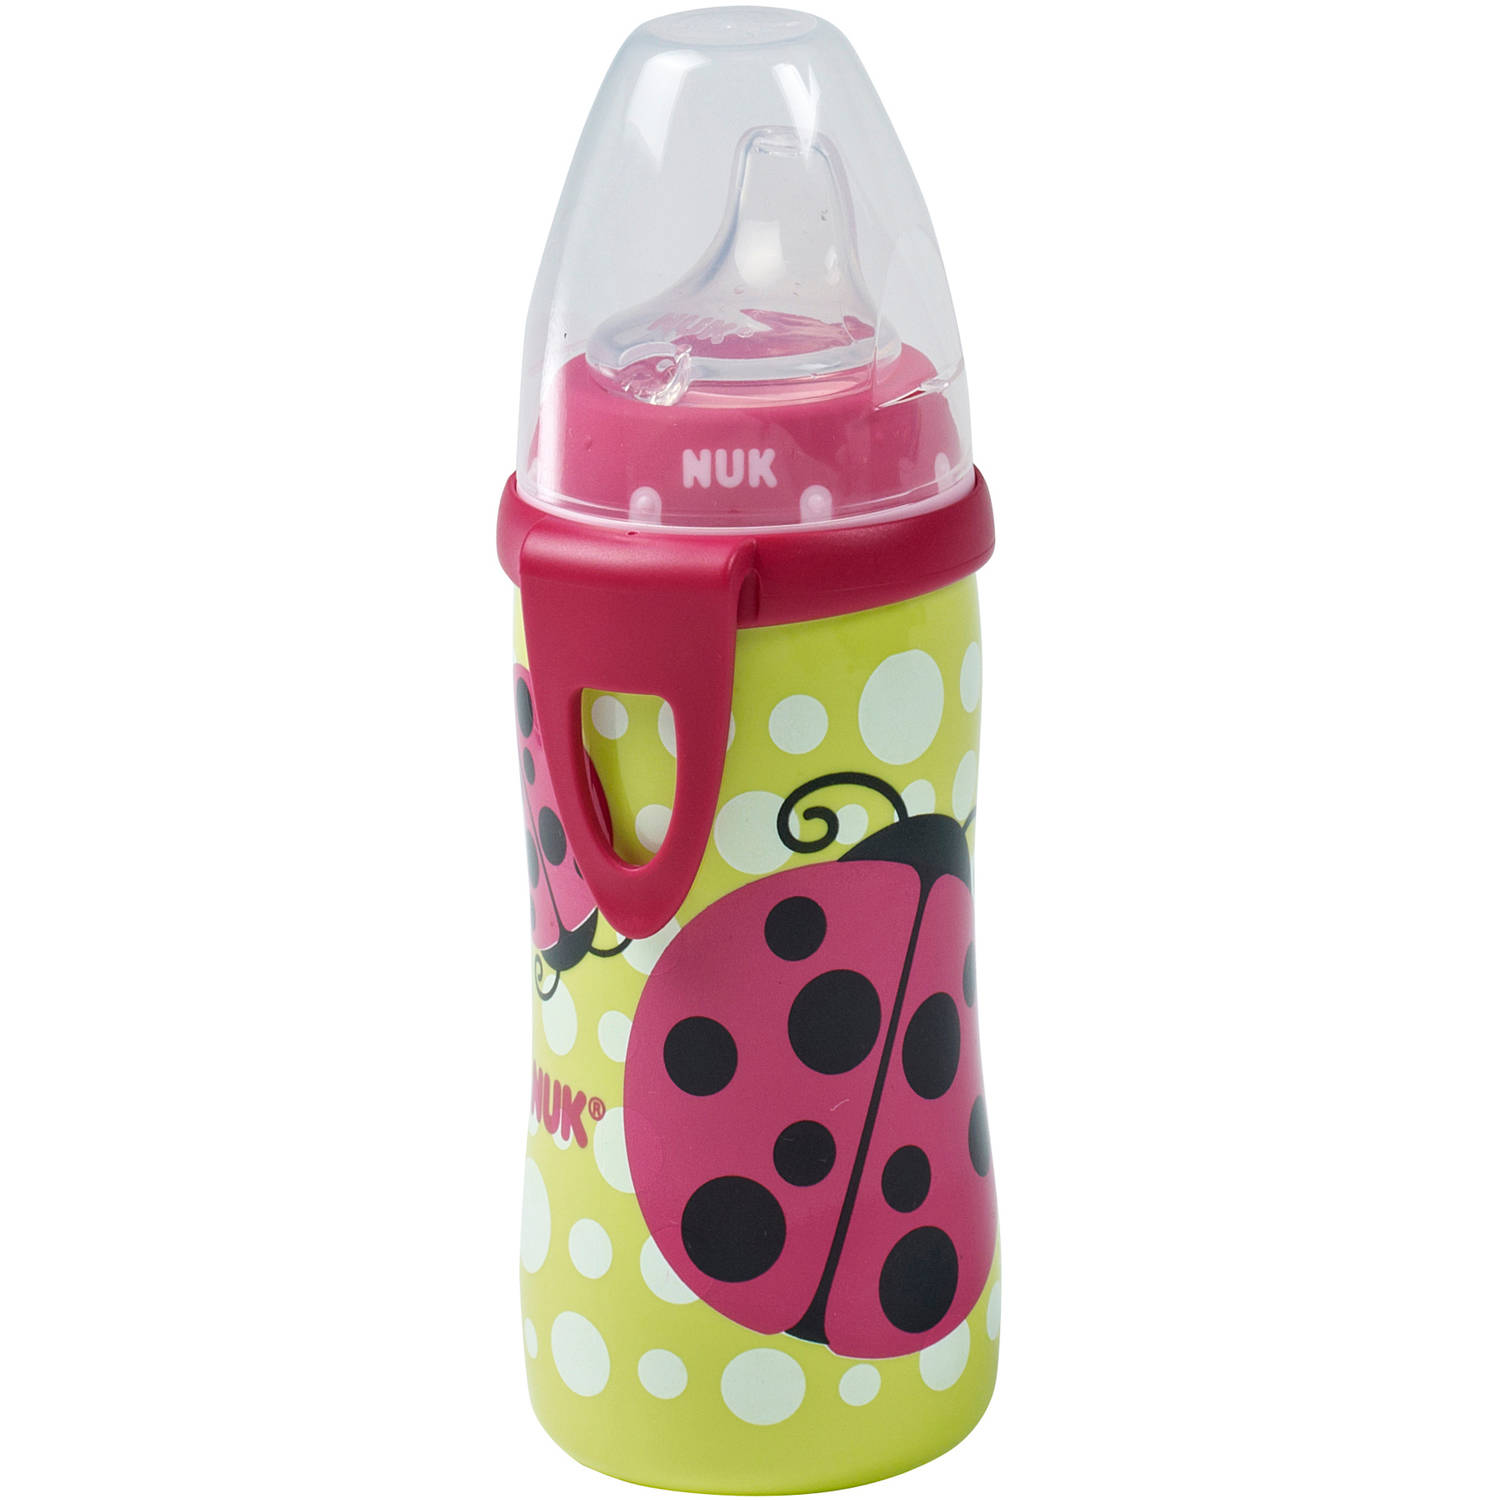 NUK - Silicone Spout 10-oz Active Cup, BPA-Free, Ladybug